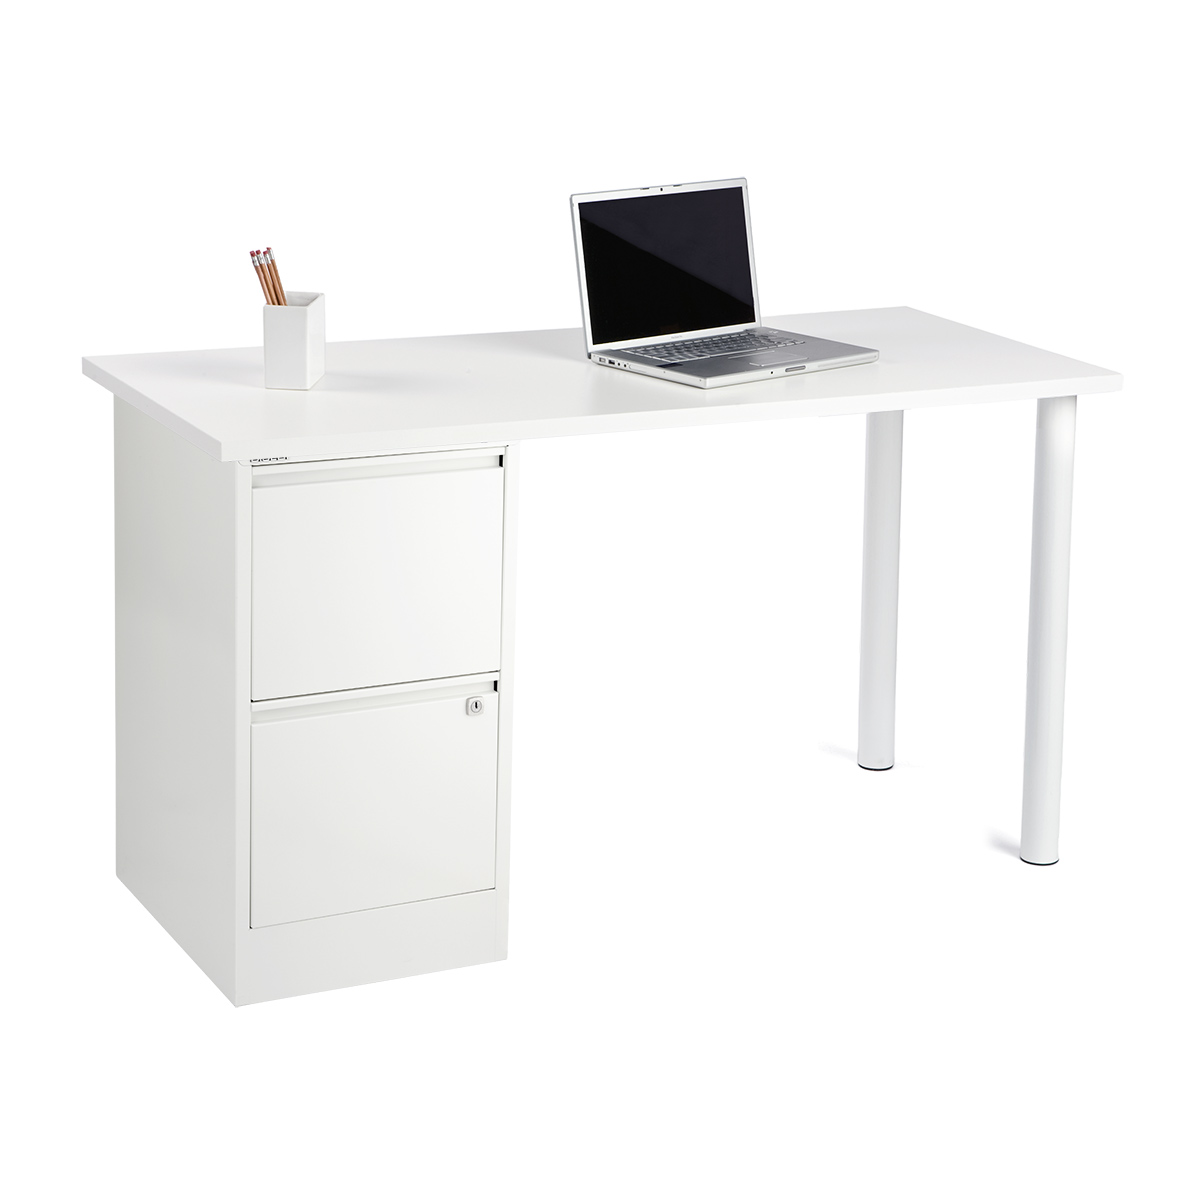 Custom Desk Designs custom desk - design your own customized desk | the container store